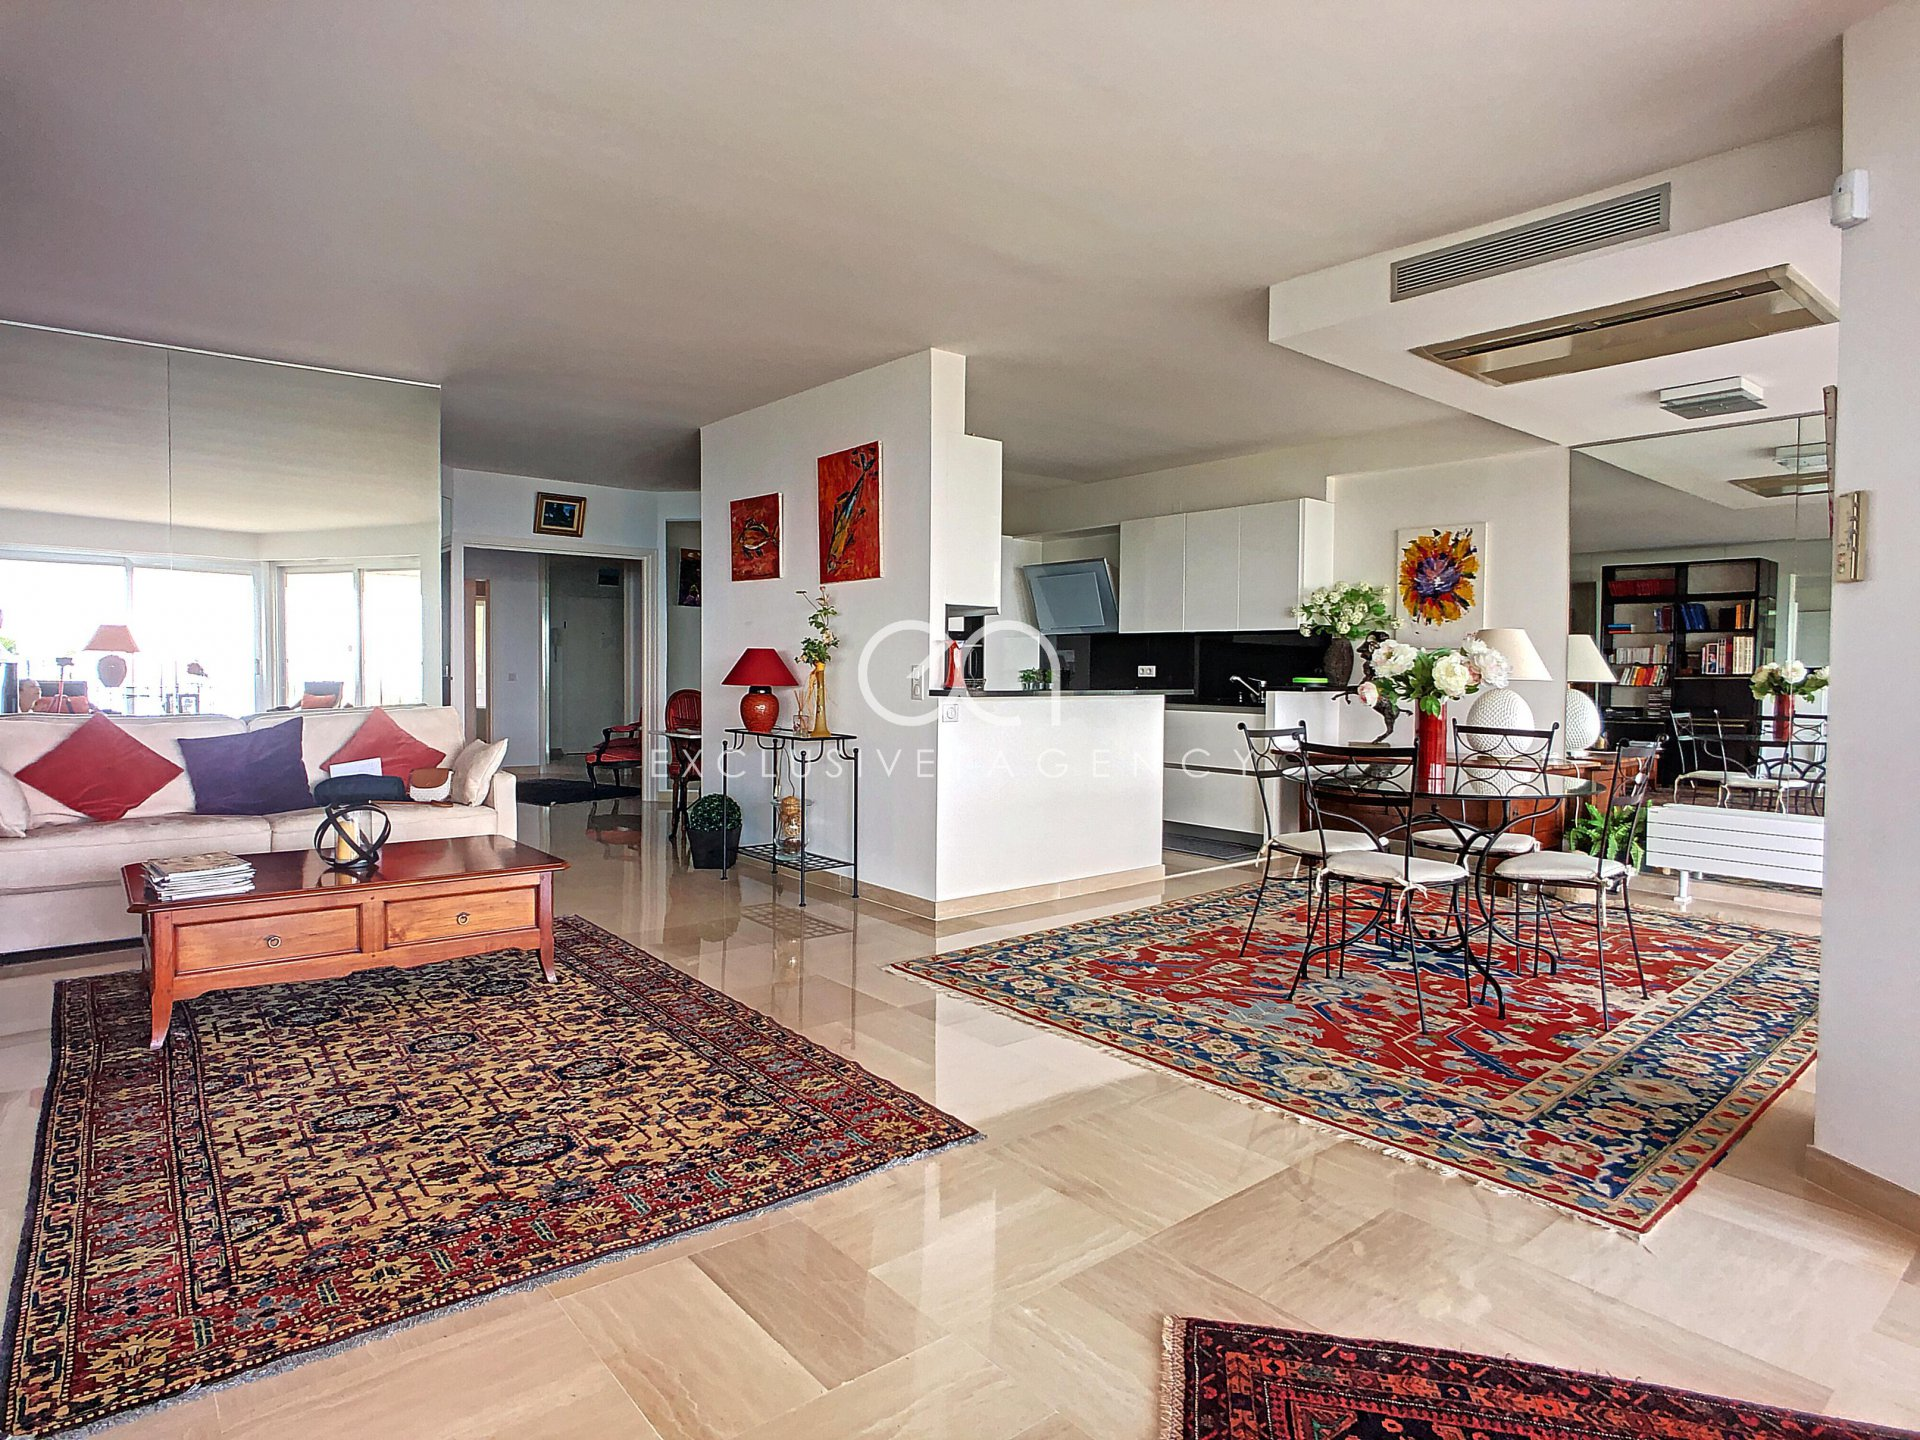 Cannes-Eden 136sqm 3-bedroom apartment, terrace with panoramic sea view